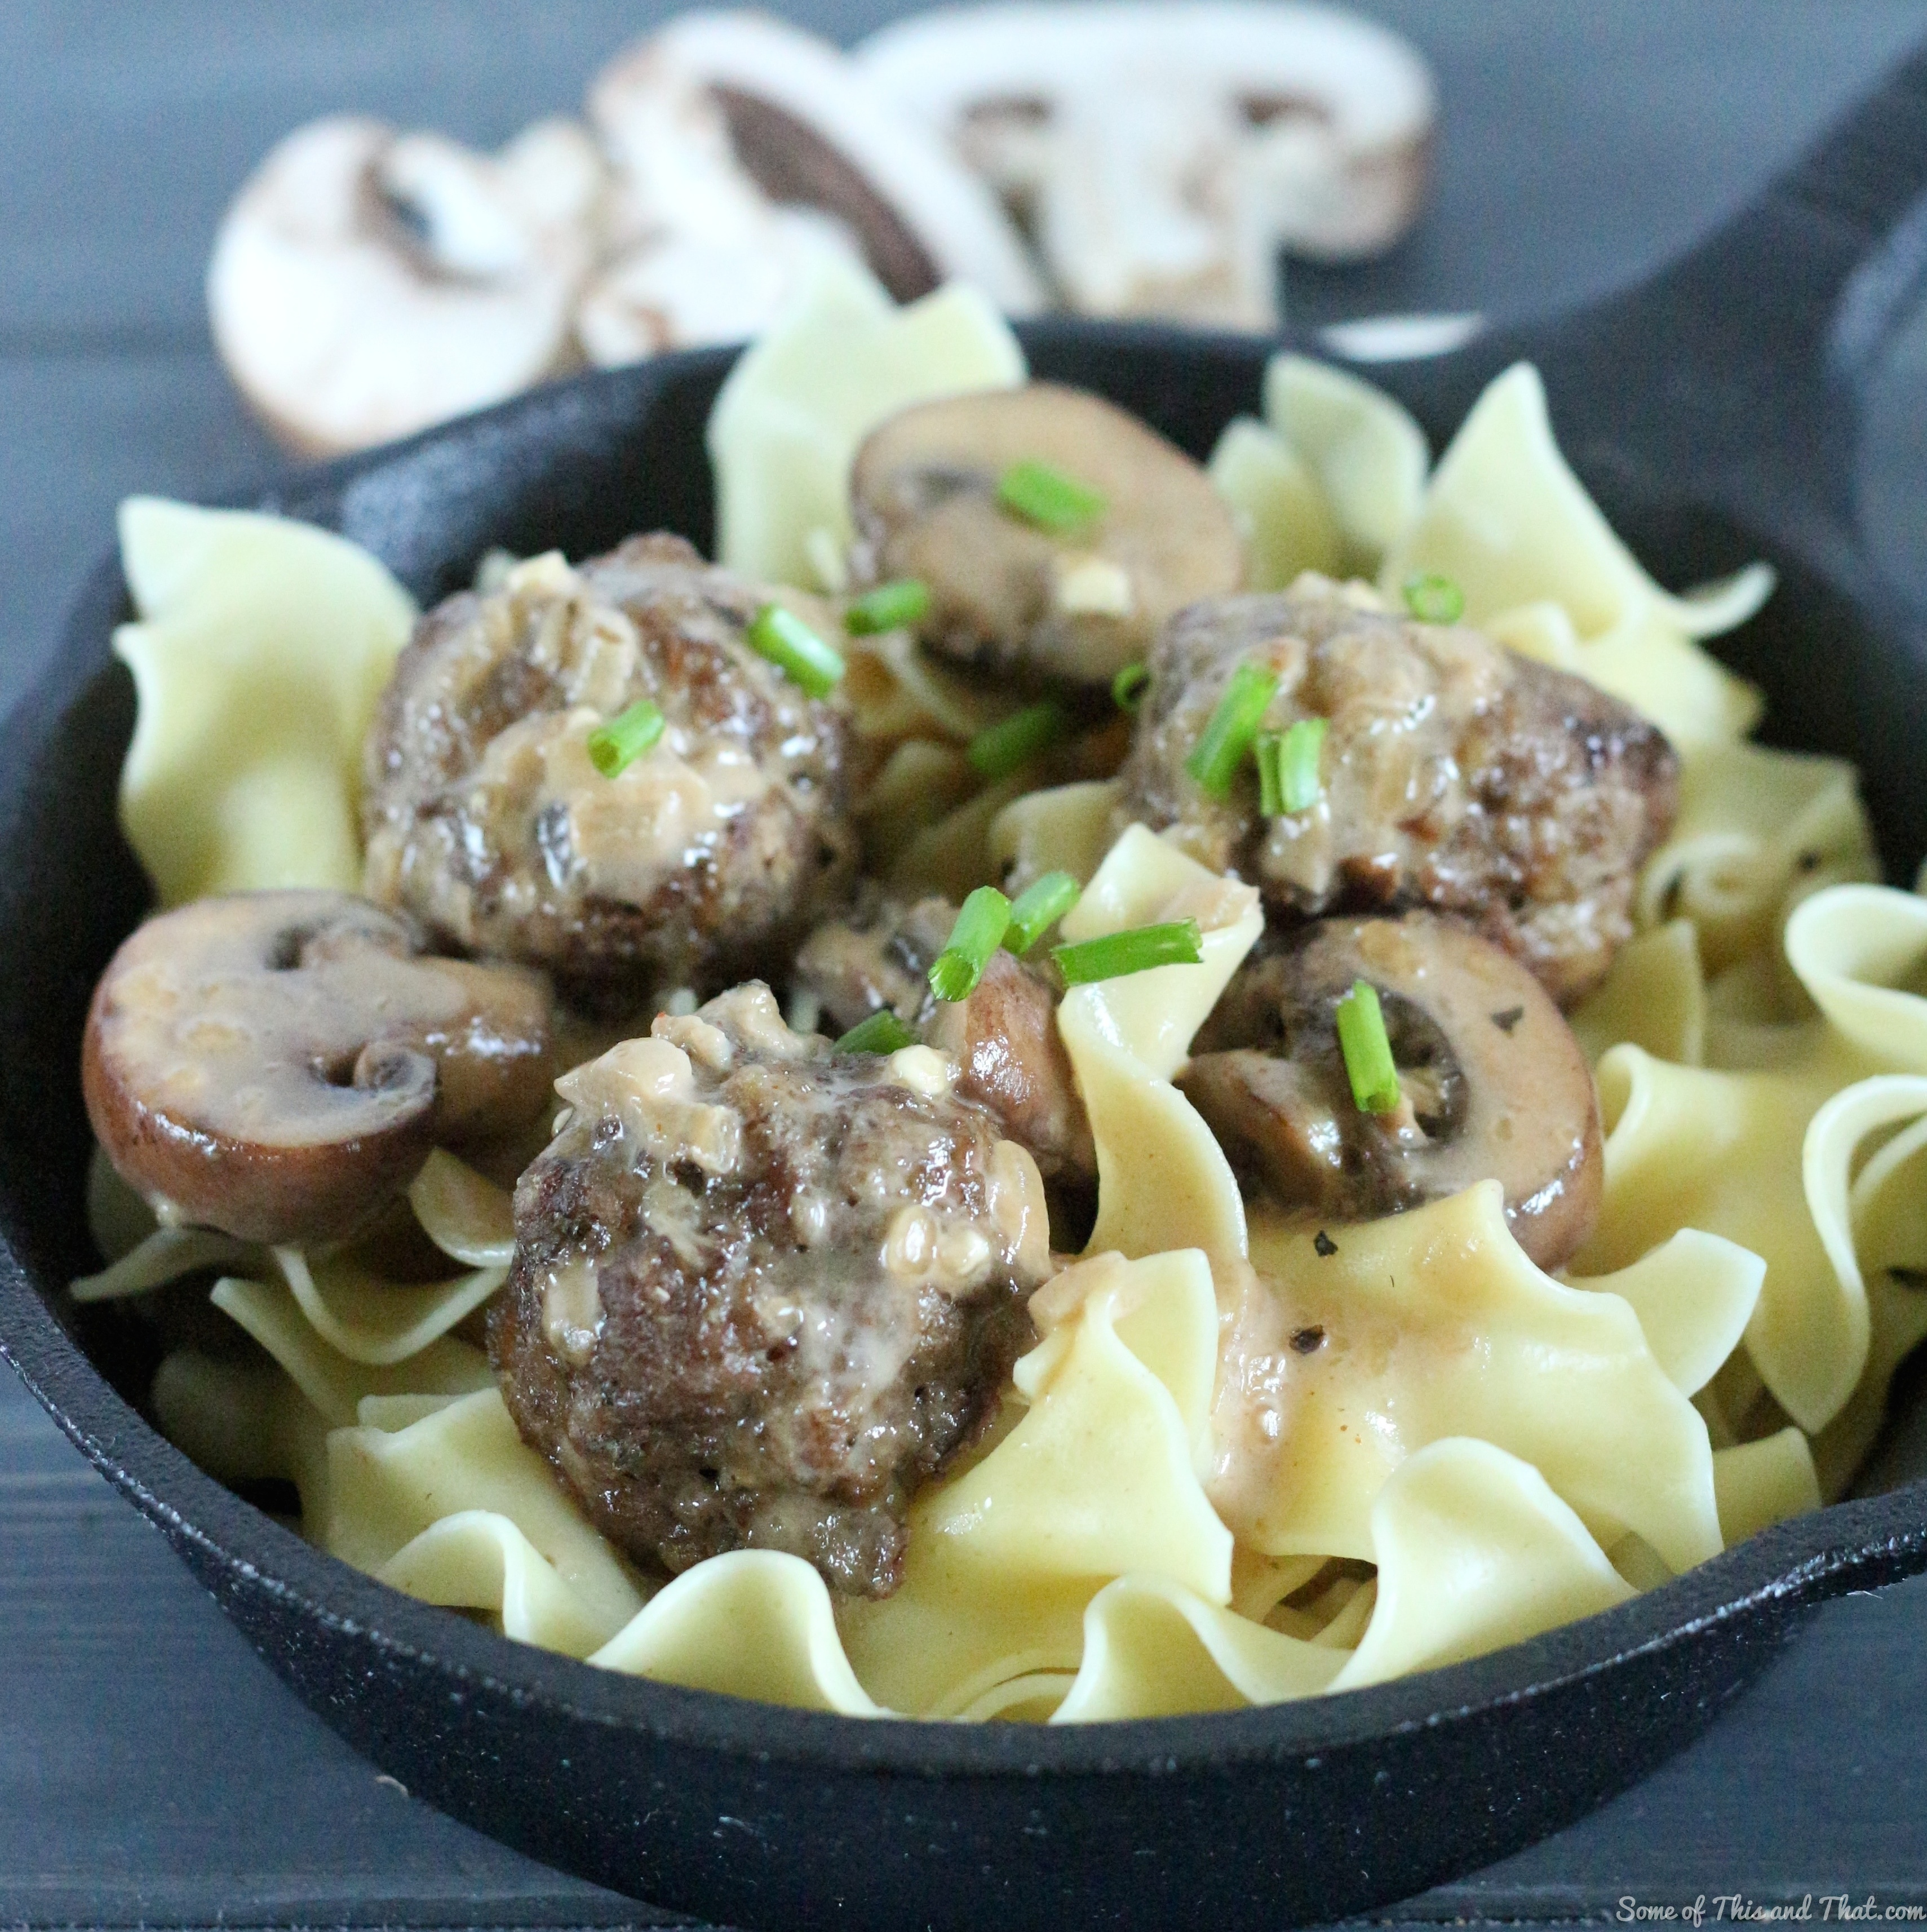 Swedish Meatballs with Mushroom Cream Sauce